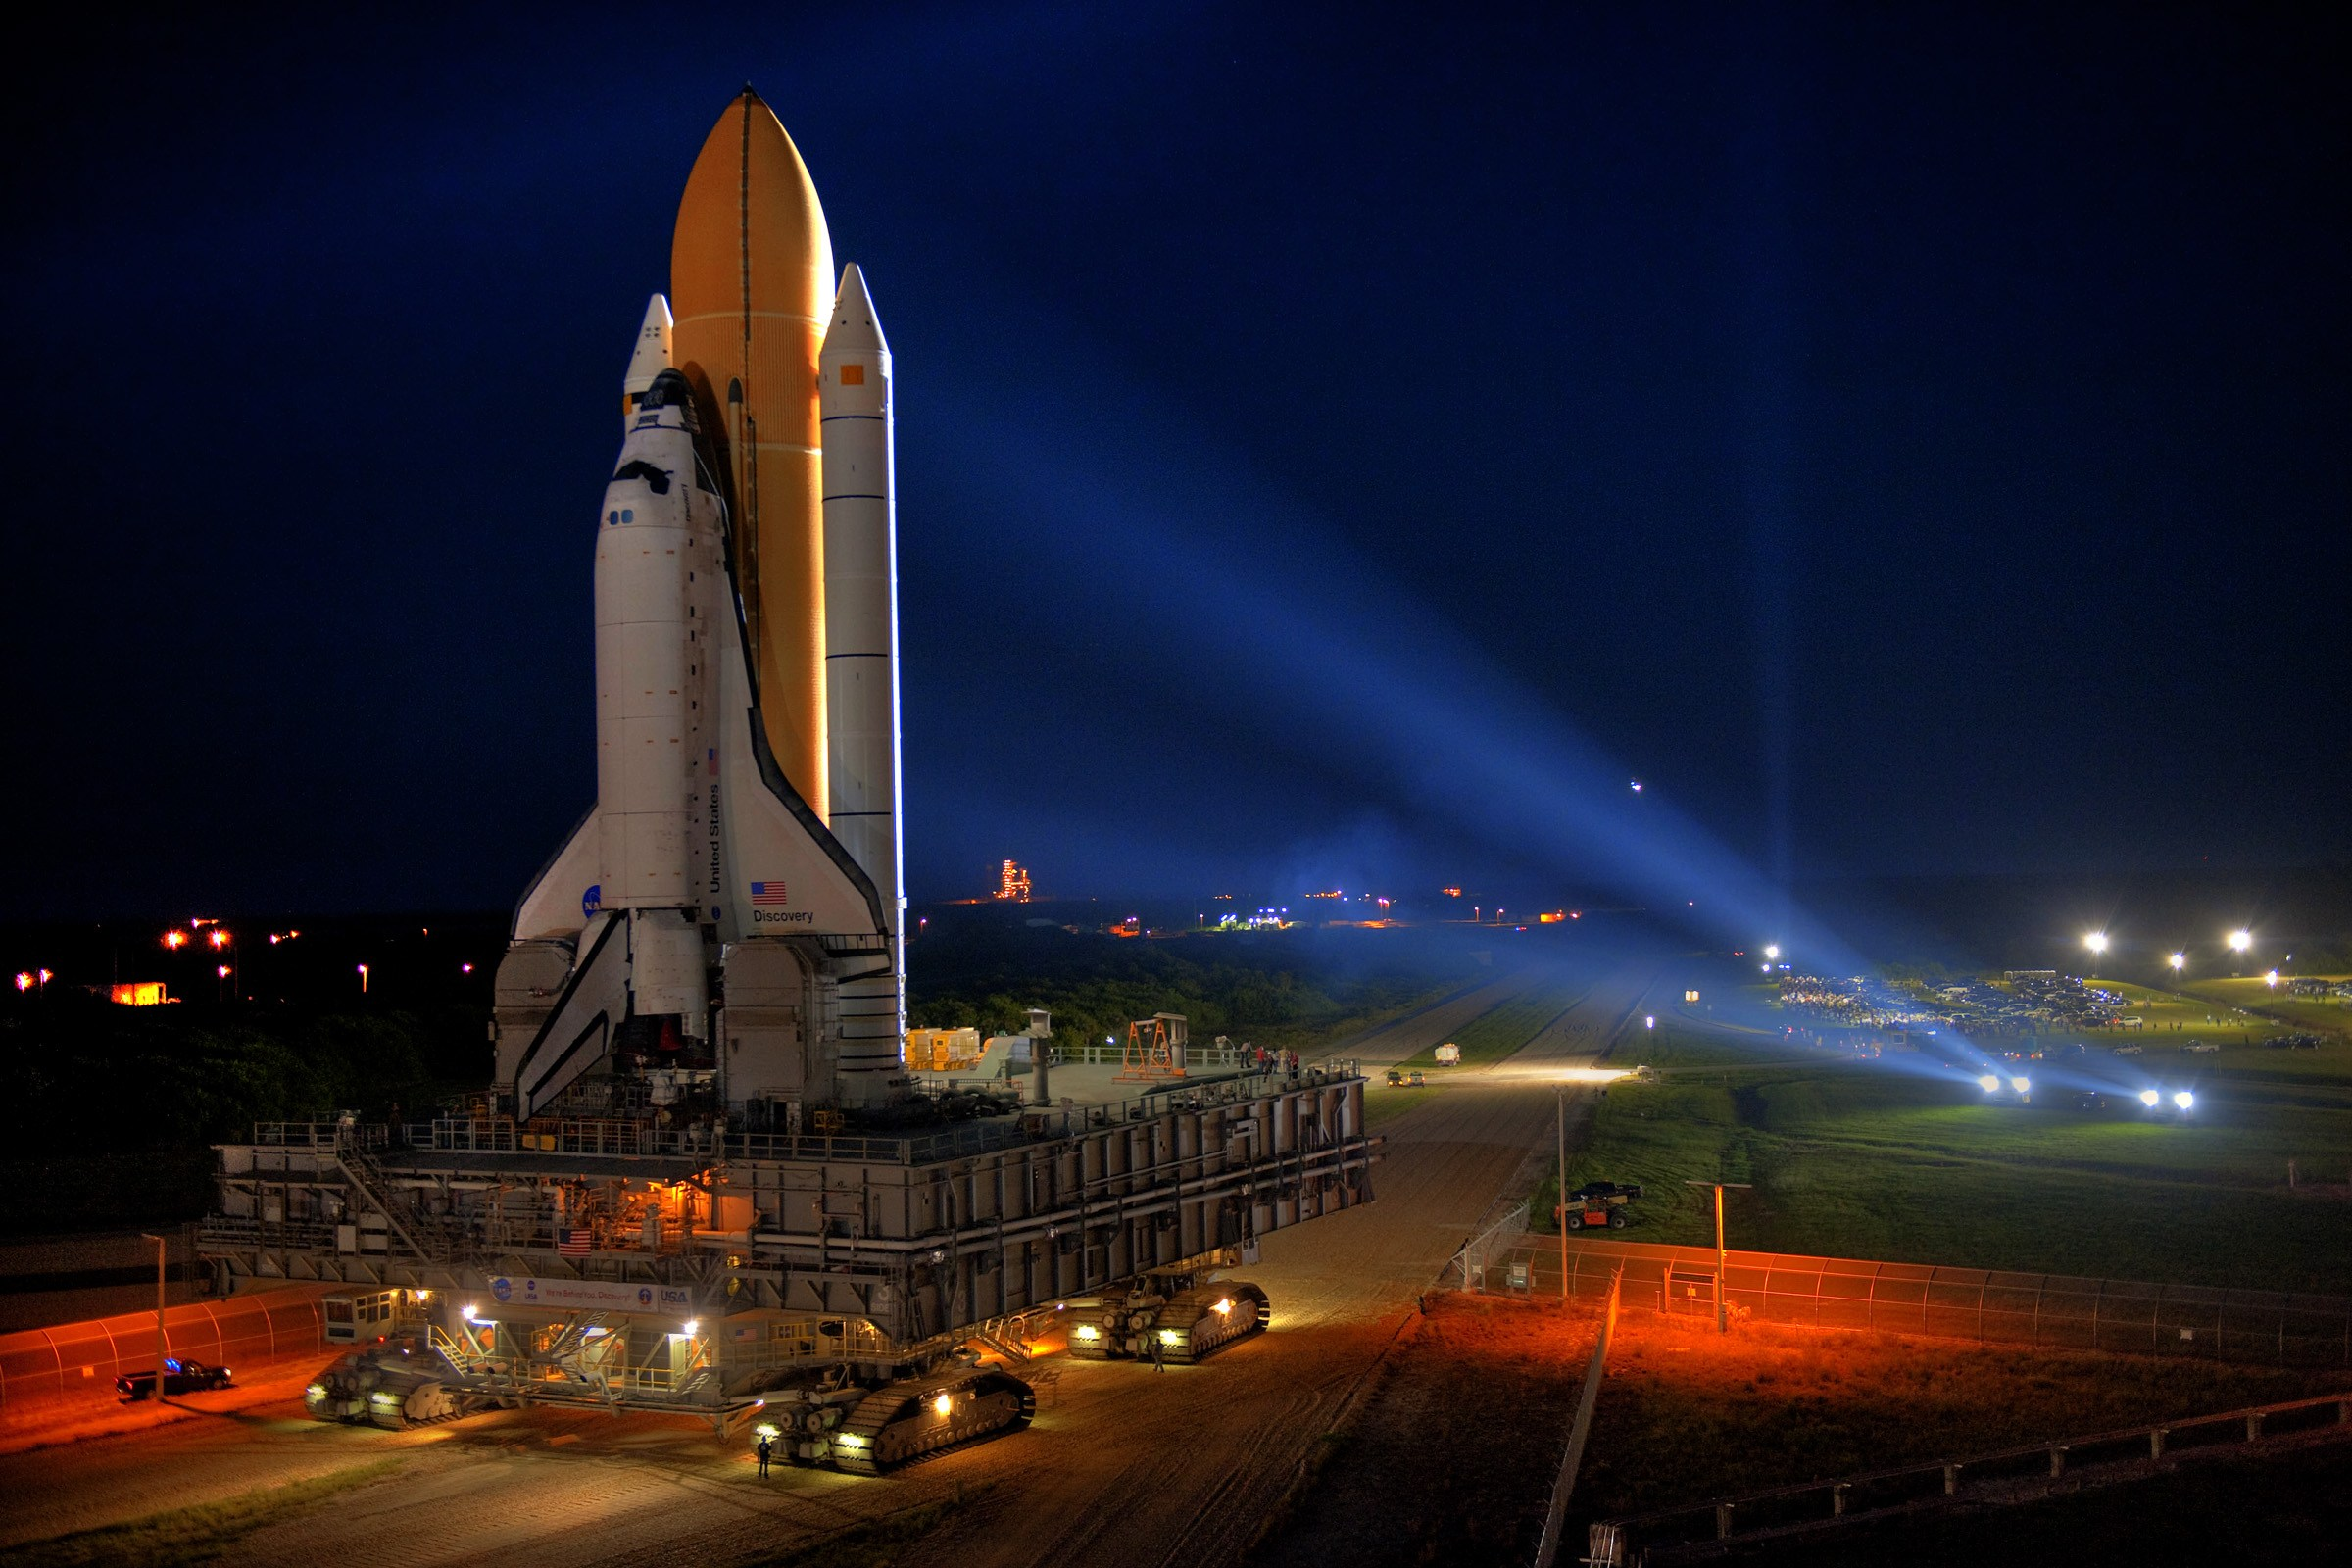 Space Shuttle Discovery Full HD Wallpaper And Background Image